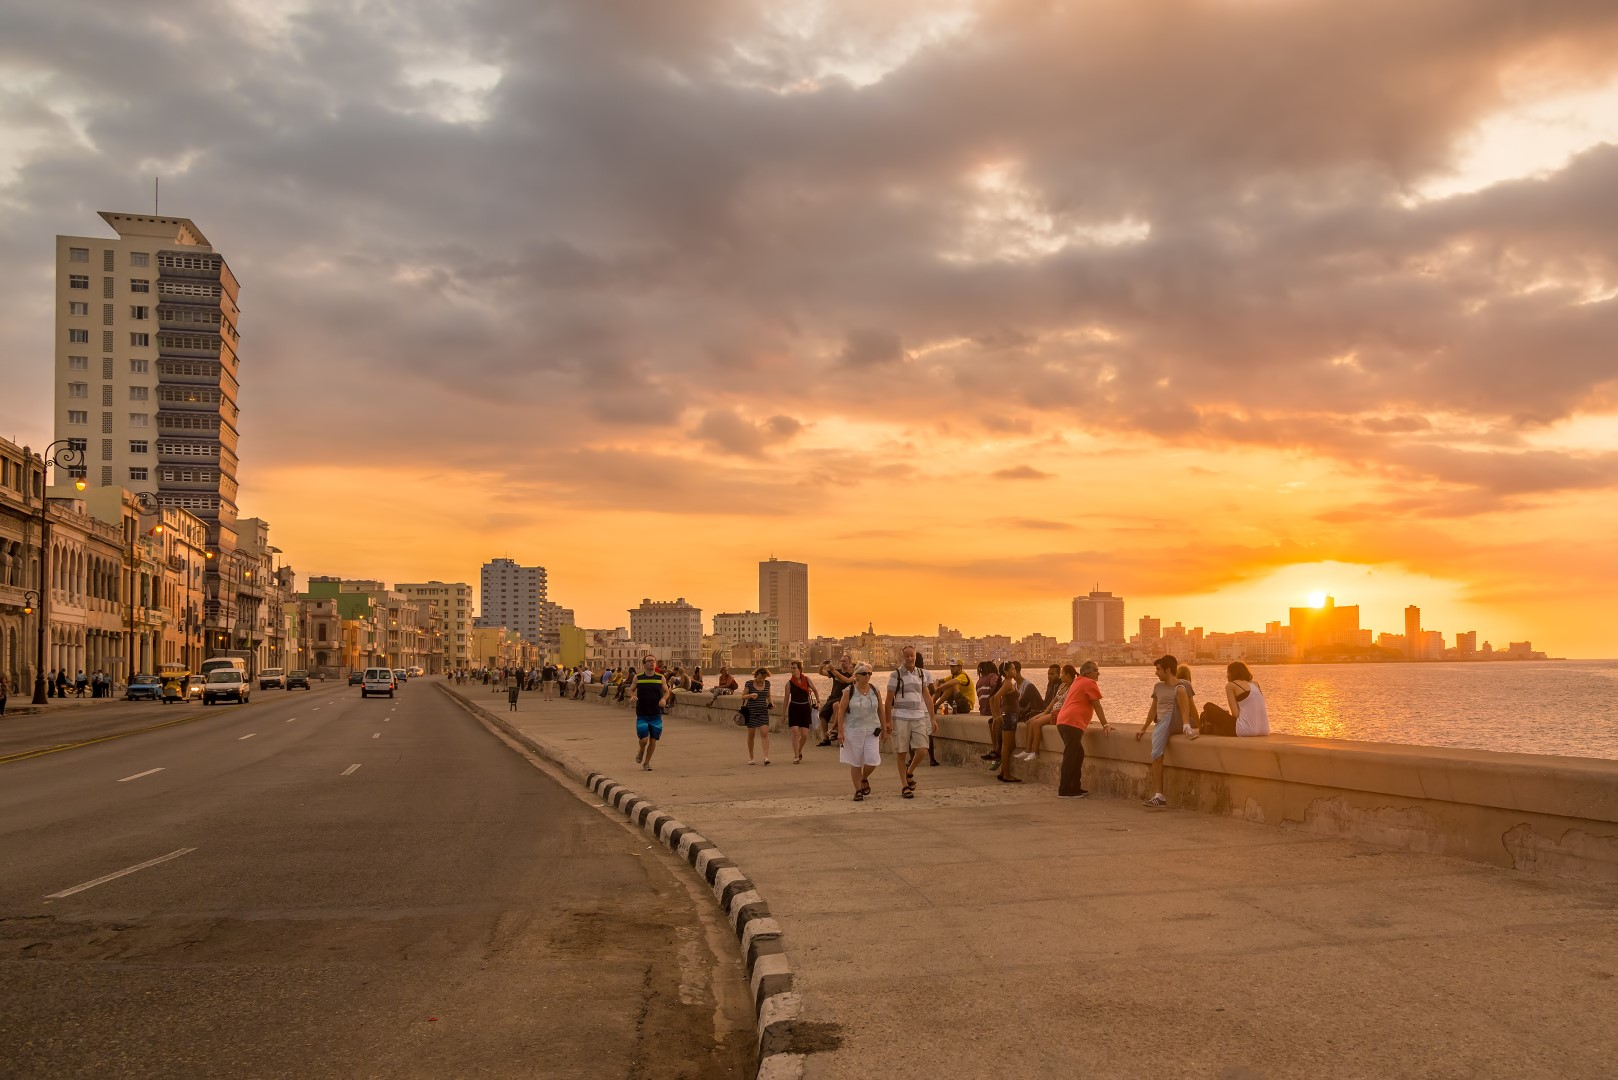 Sunset over the Malecon in Havana, Cuba